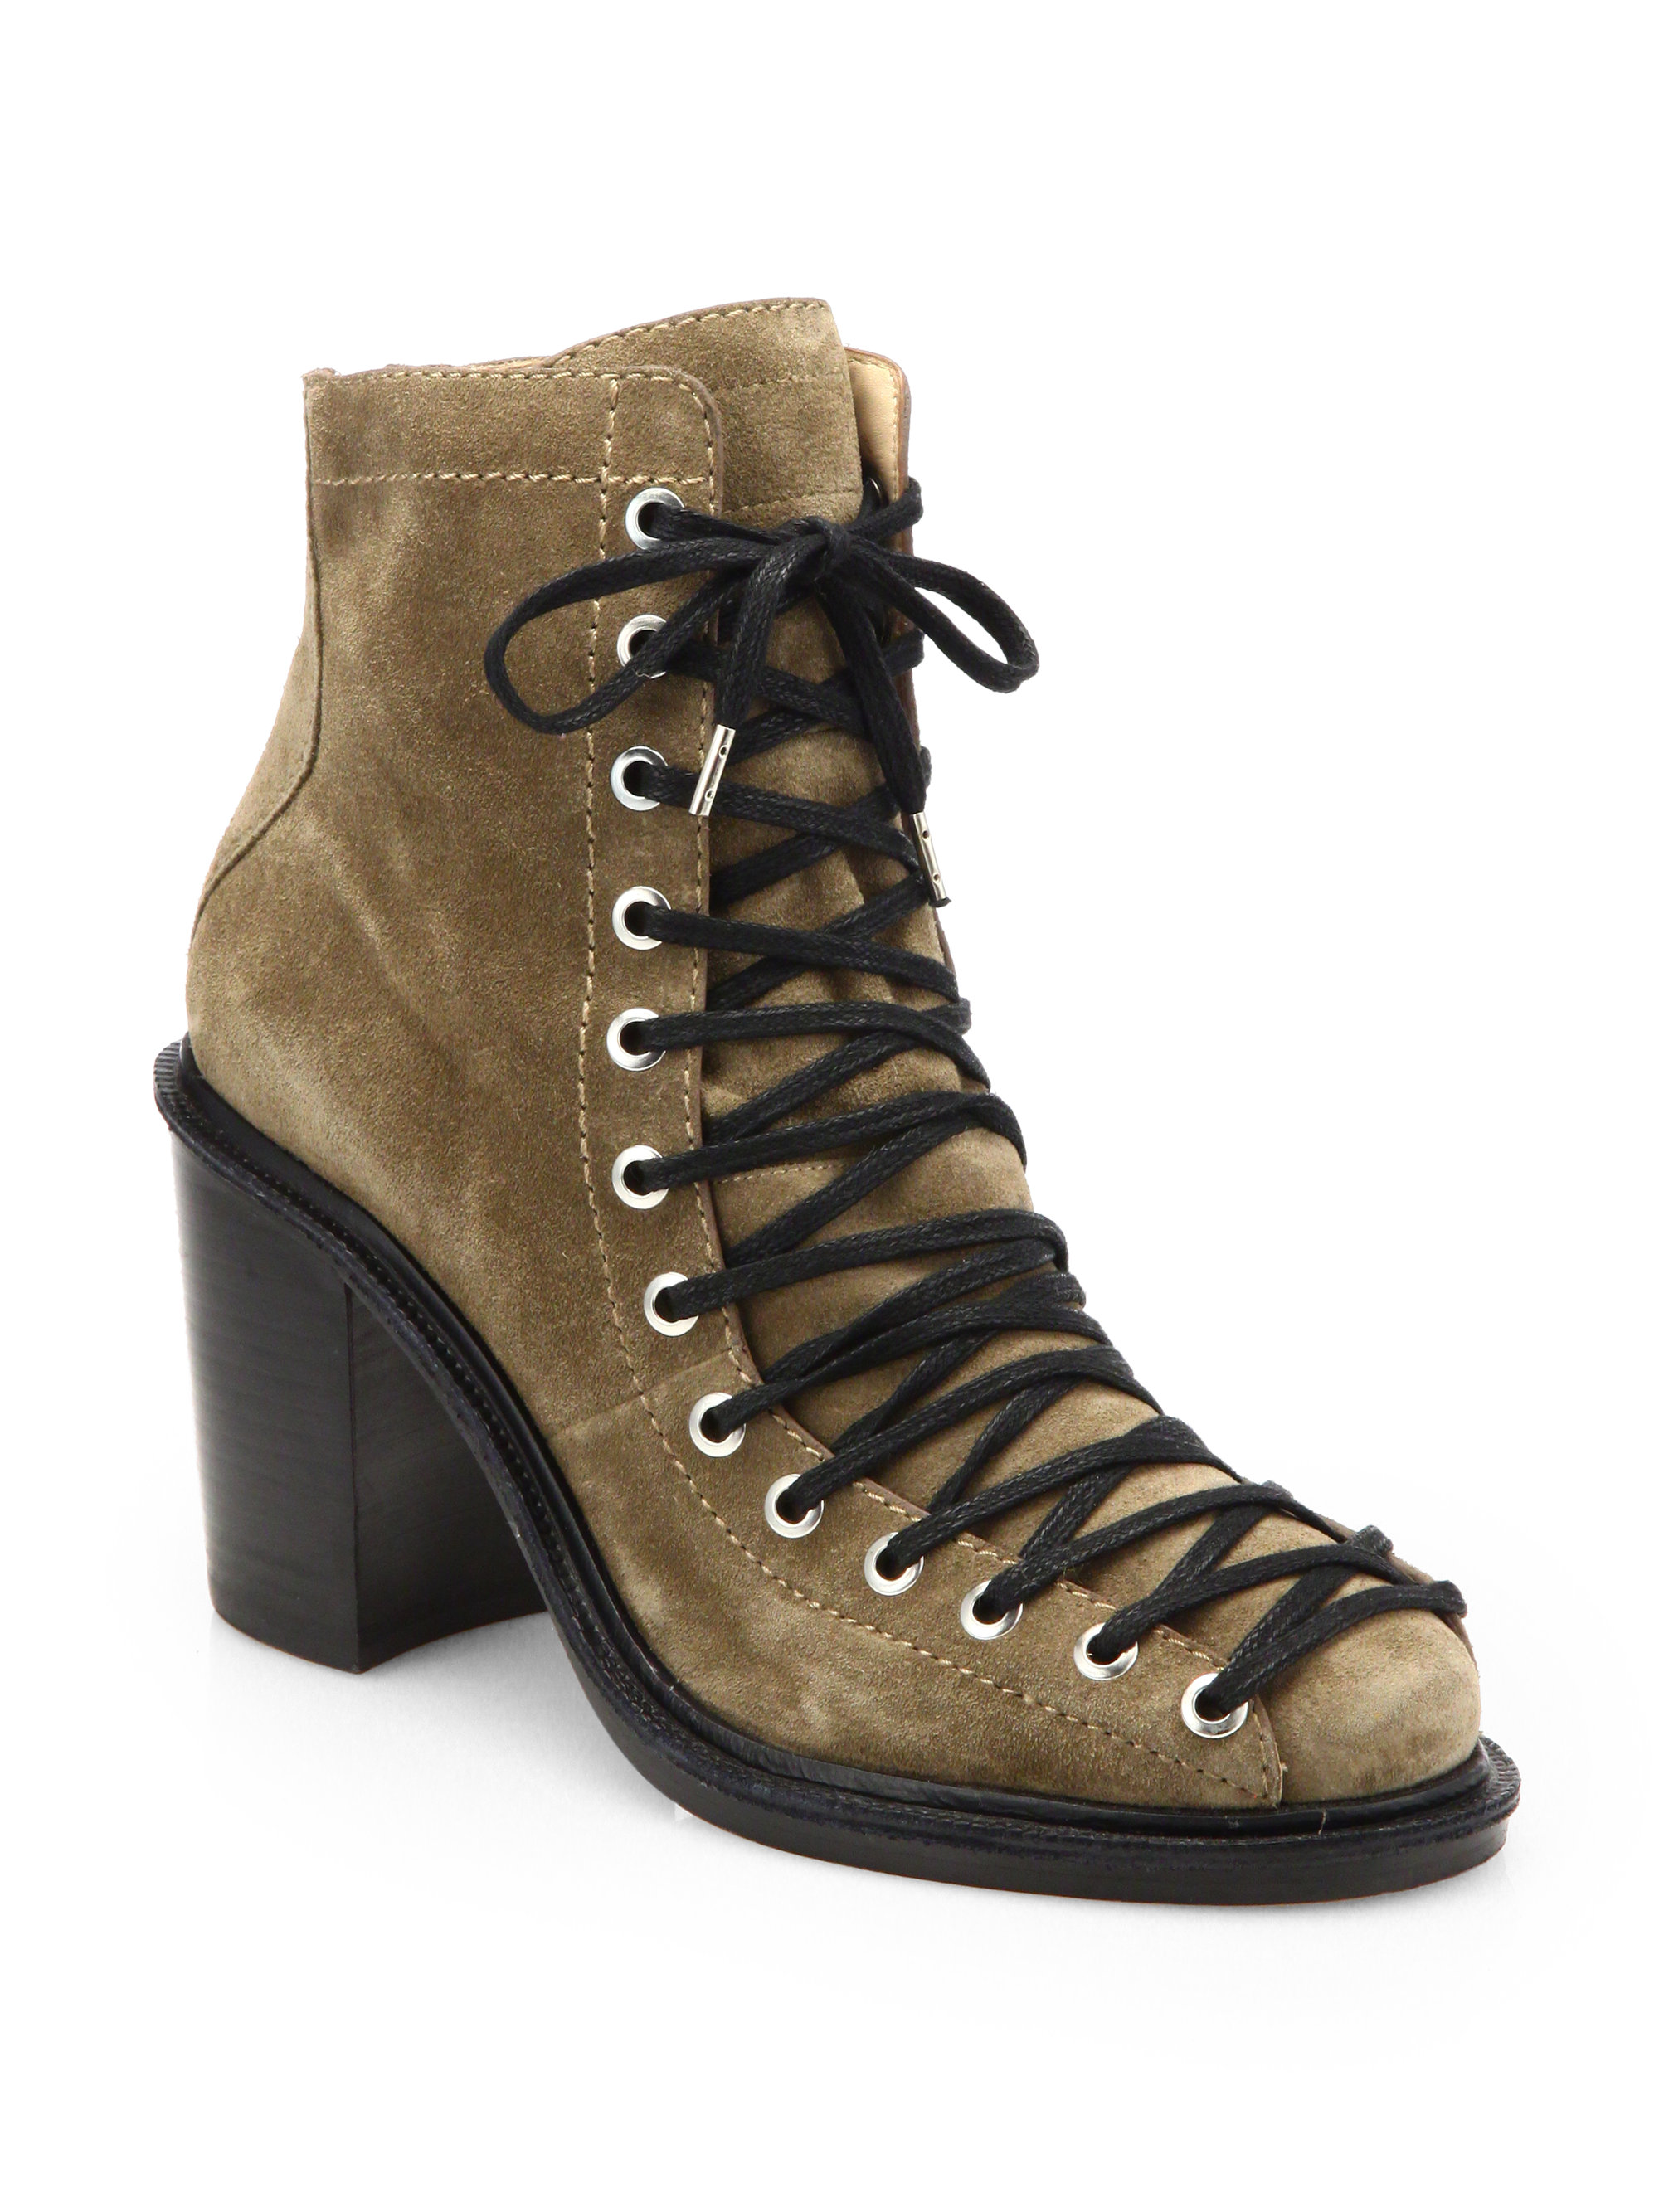 Elizabeth and james Terri Suede Laceup Ankle Boots | Lyst